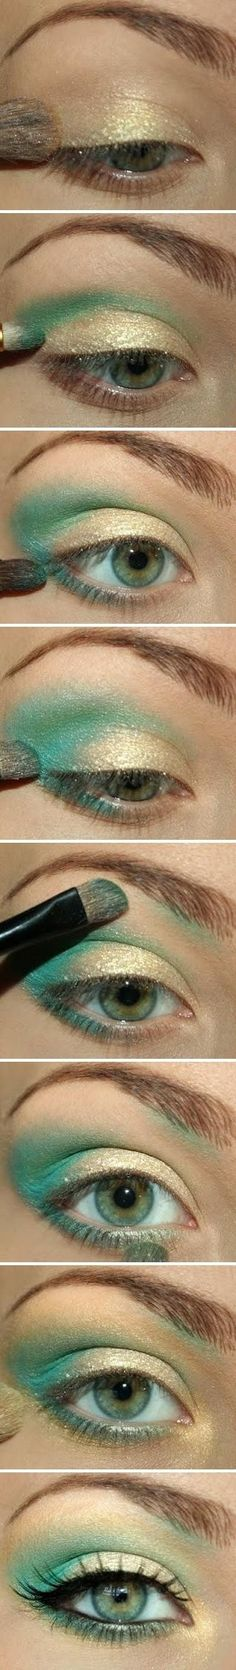 Beautiful green & gold eyeshadow <3